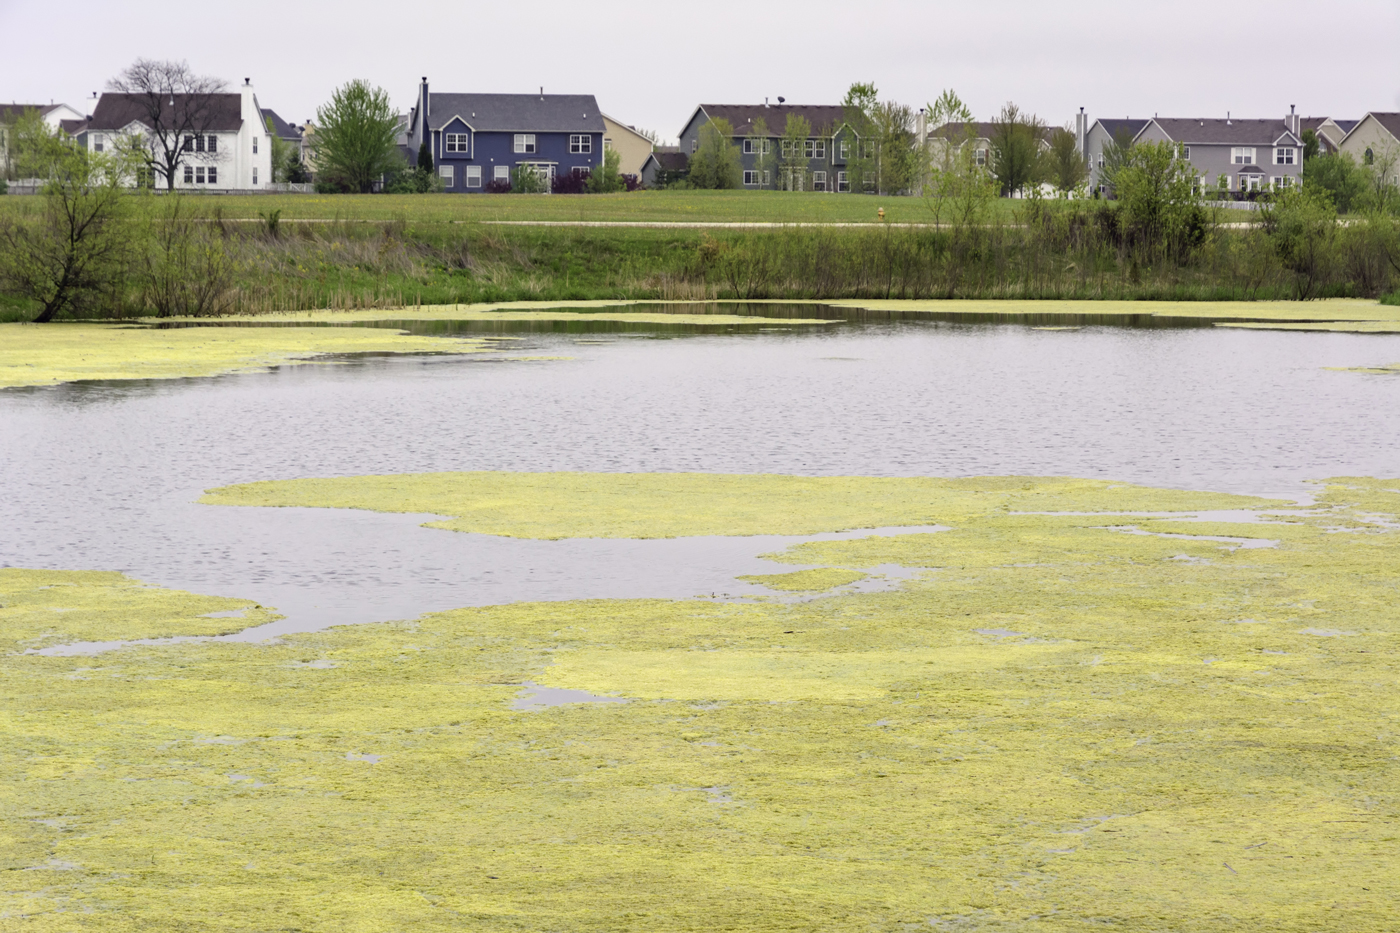 green roof nutrient runoff: pond with too much nutrients